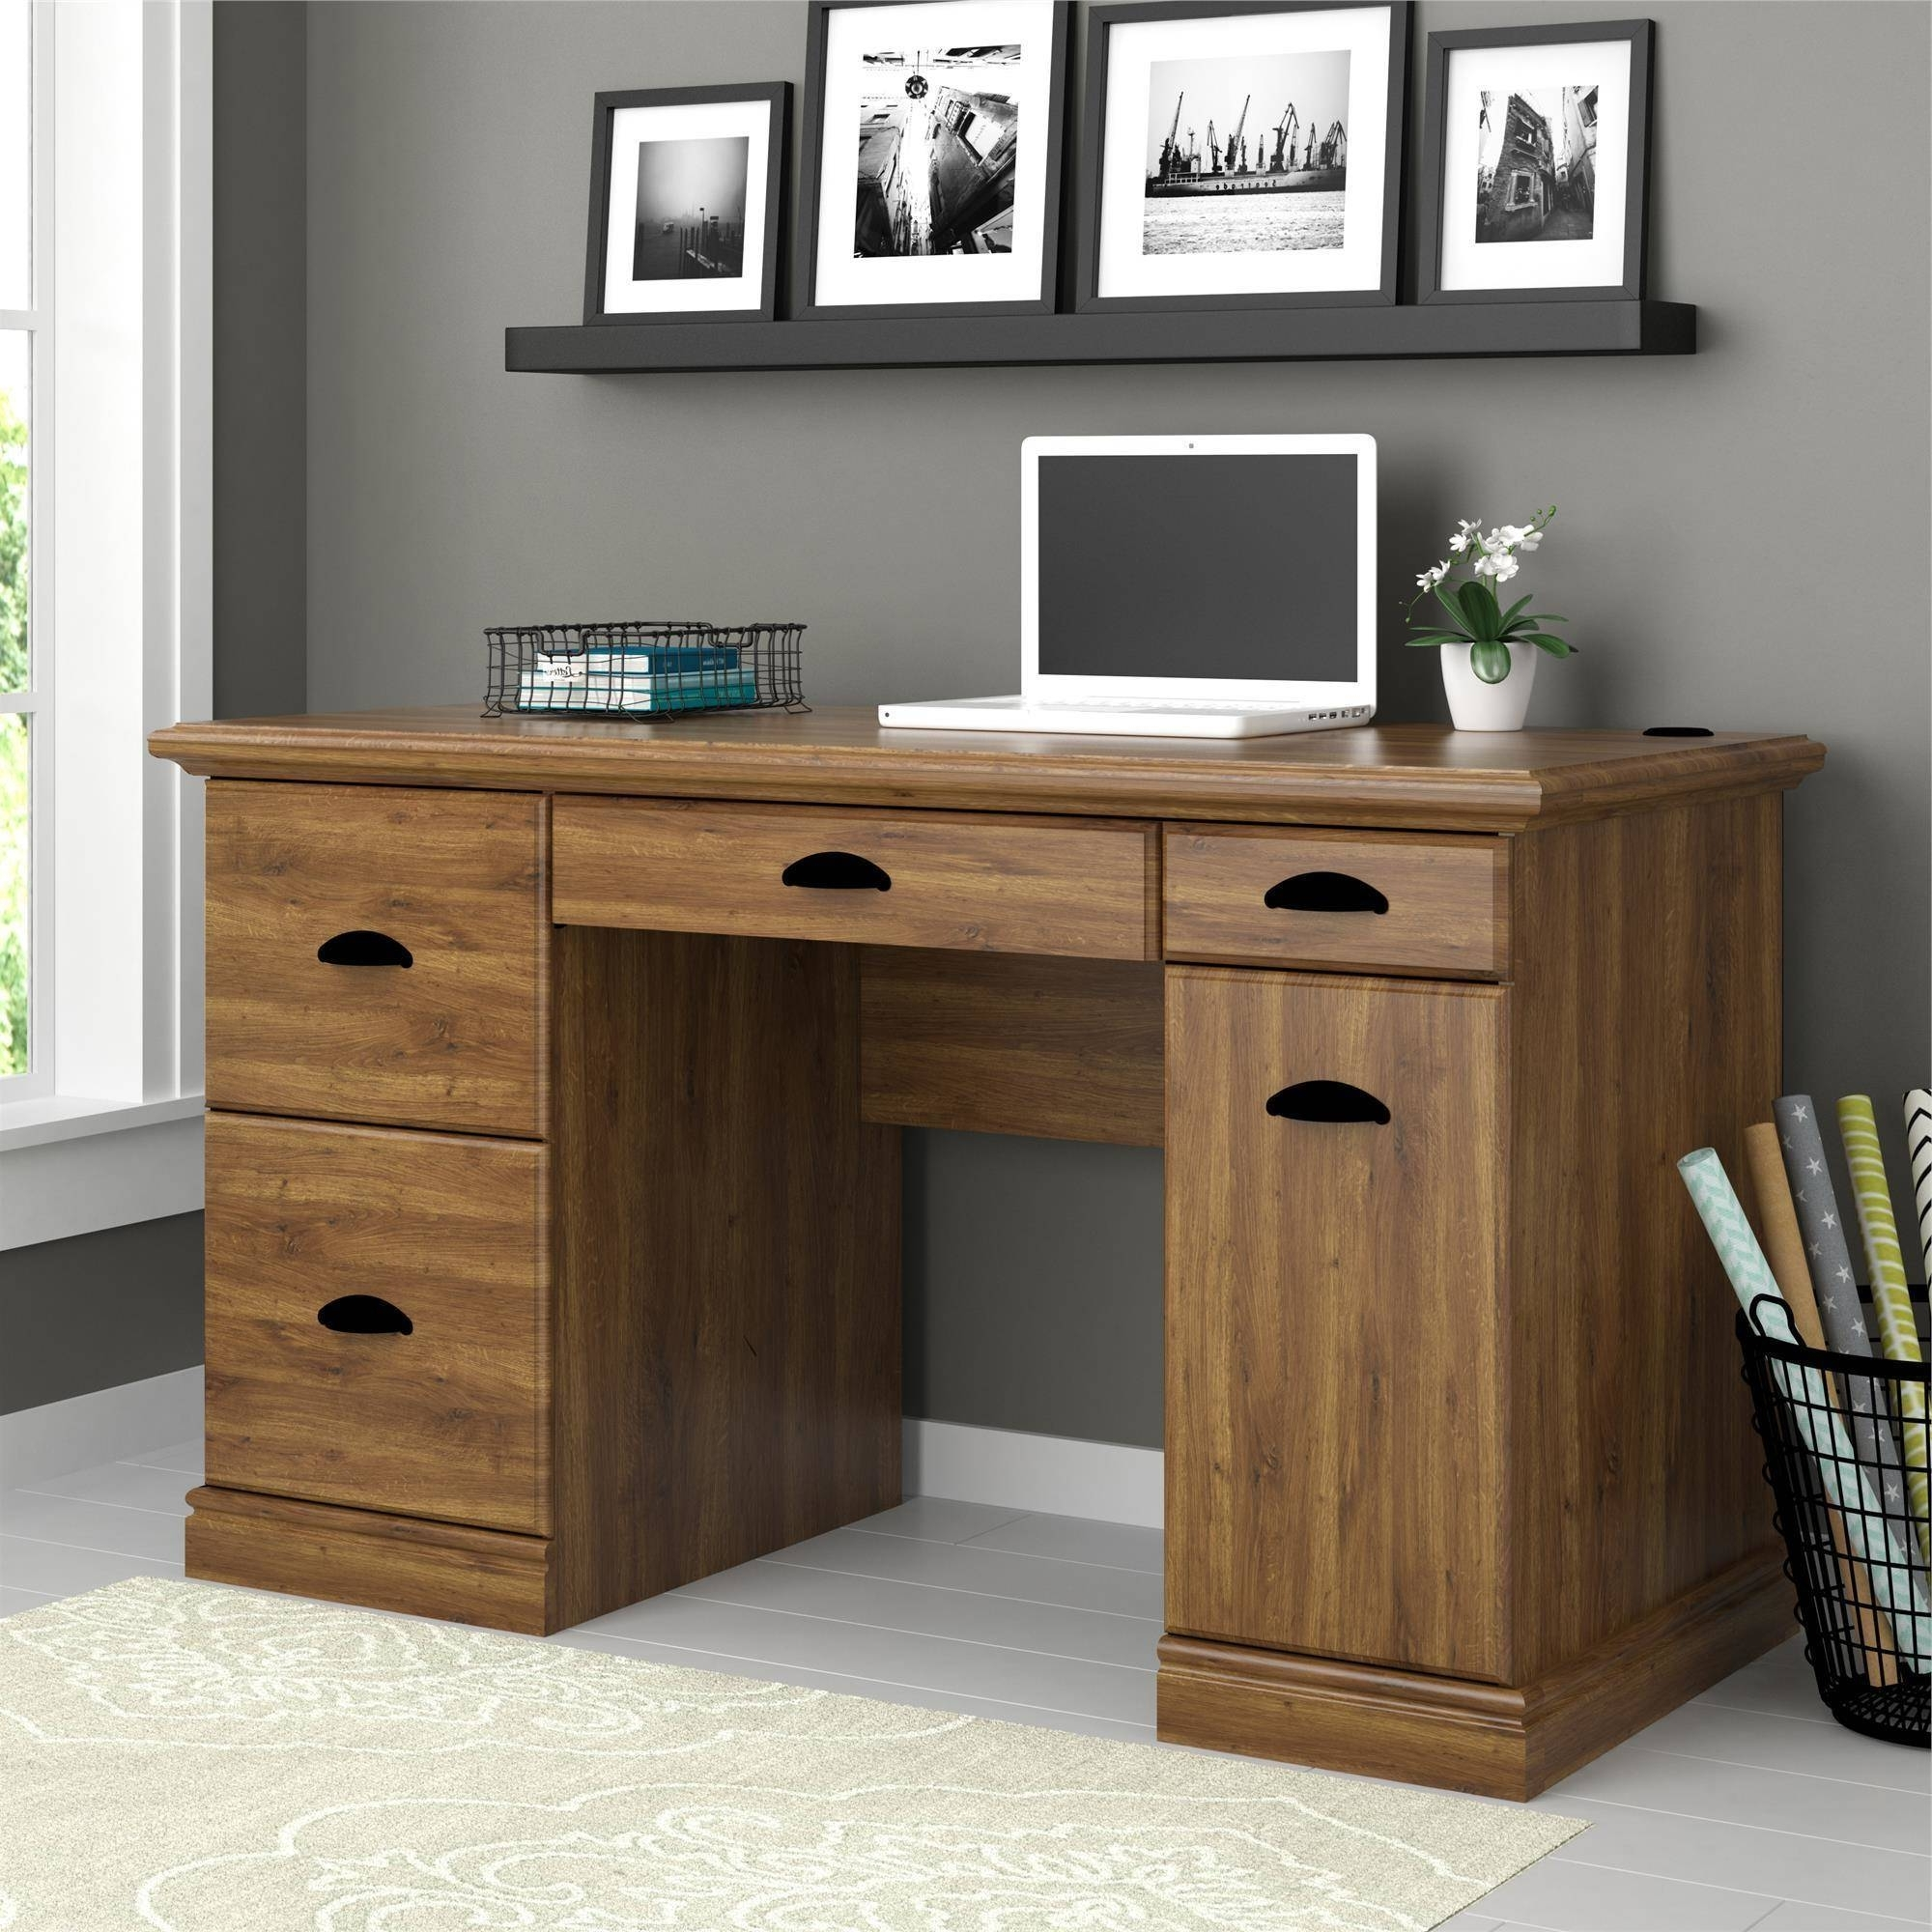 Computer Desks With Drawers Regarding Most Popular Better Homes And Gardens Computer Desk, Brown Oak – Walmart (View 7 of 20)